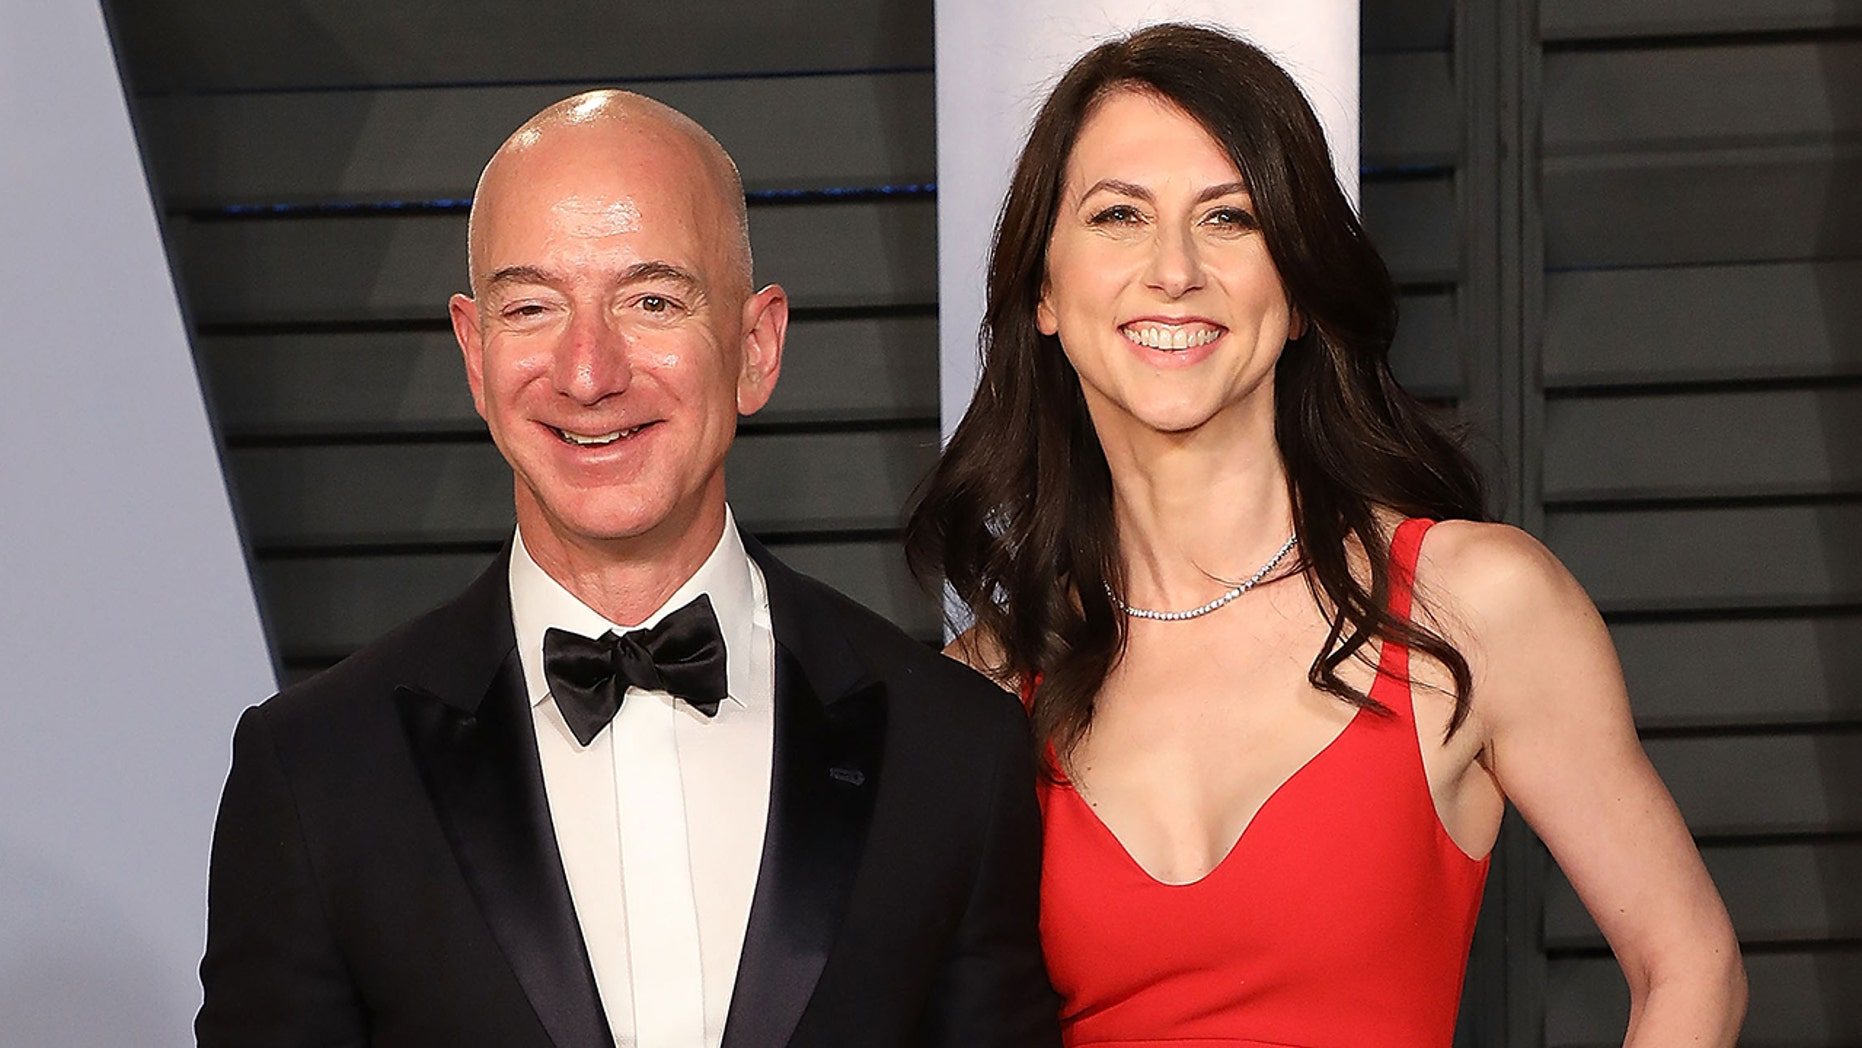 Jeff Bezos gets 75 percent of family's Amazon stock in divorce